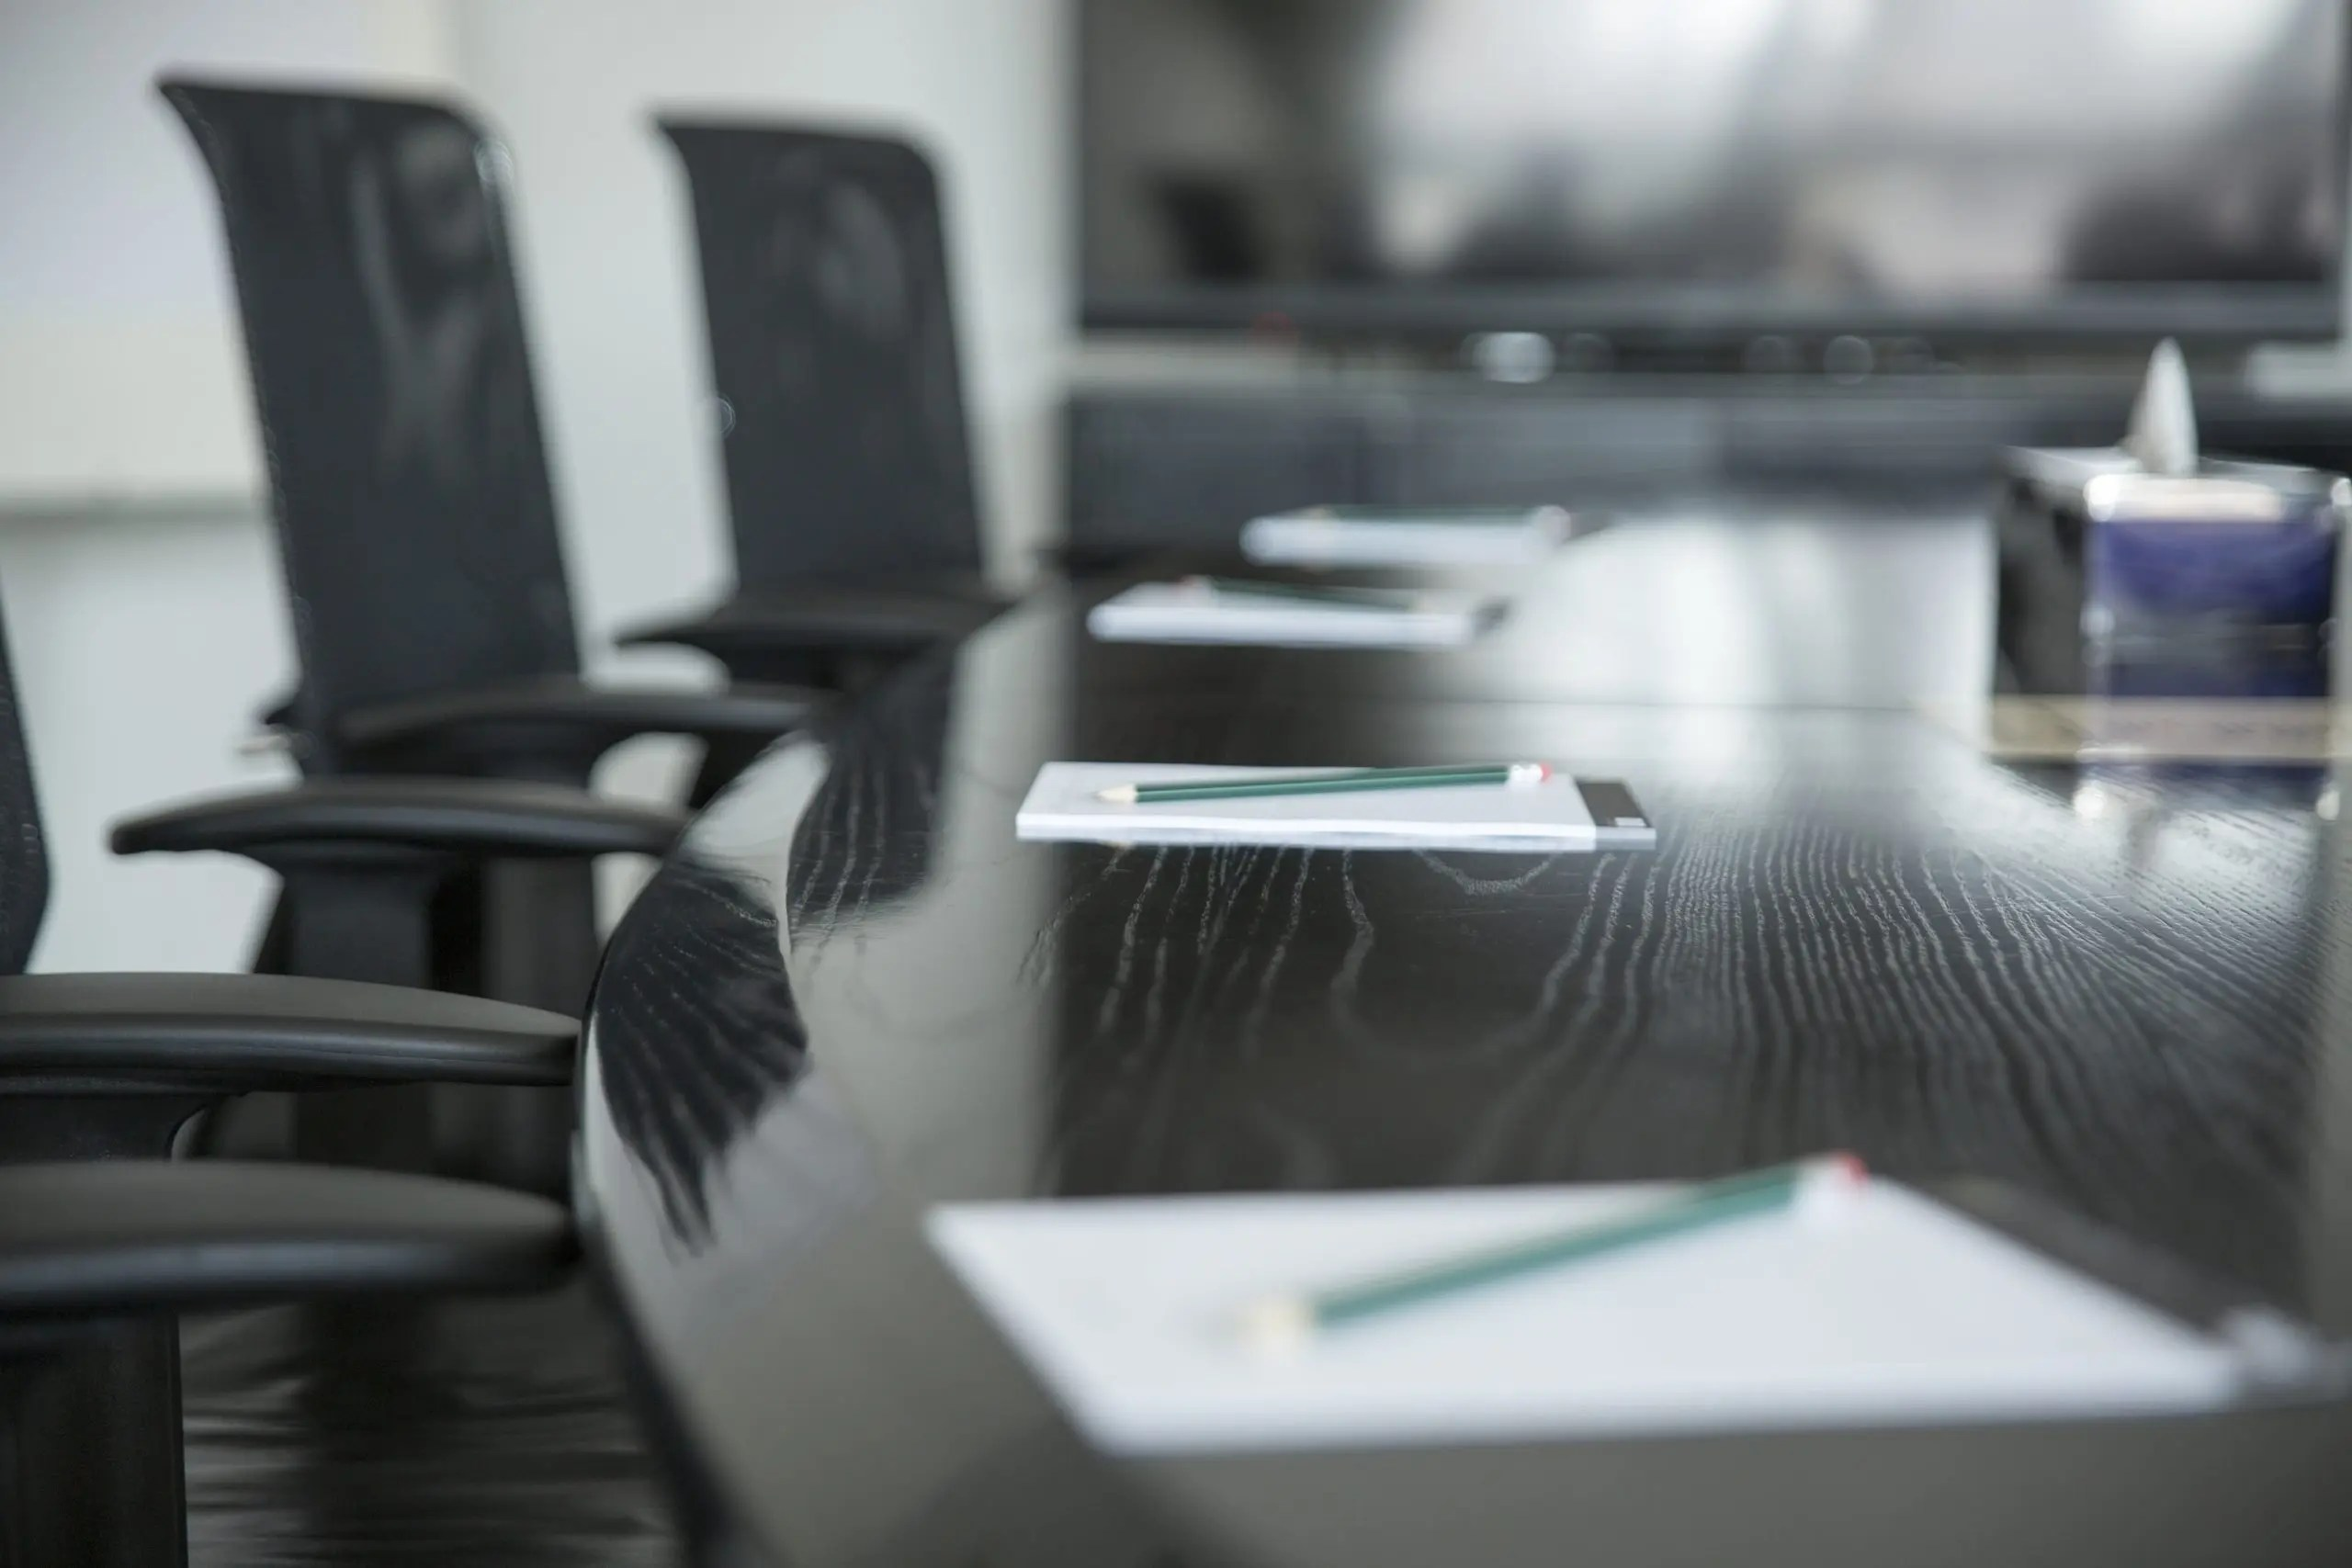 Empty Conference Room with paper and pencils in front of each seat - symbolizing a board meeting